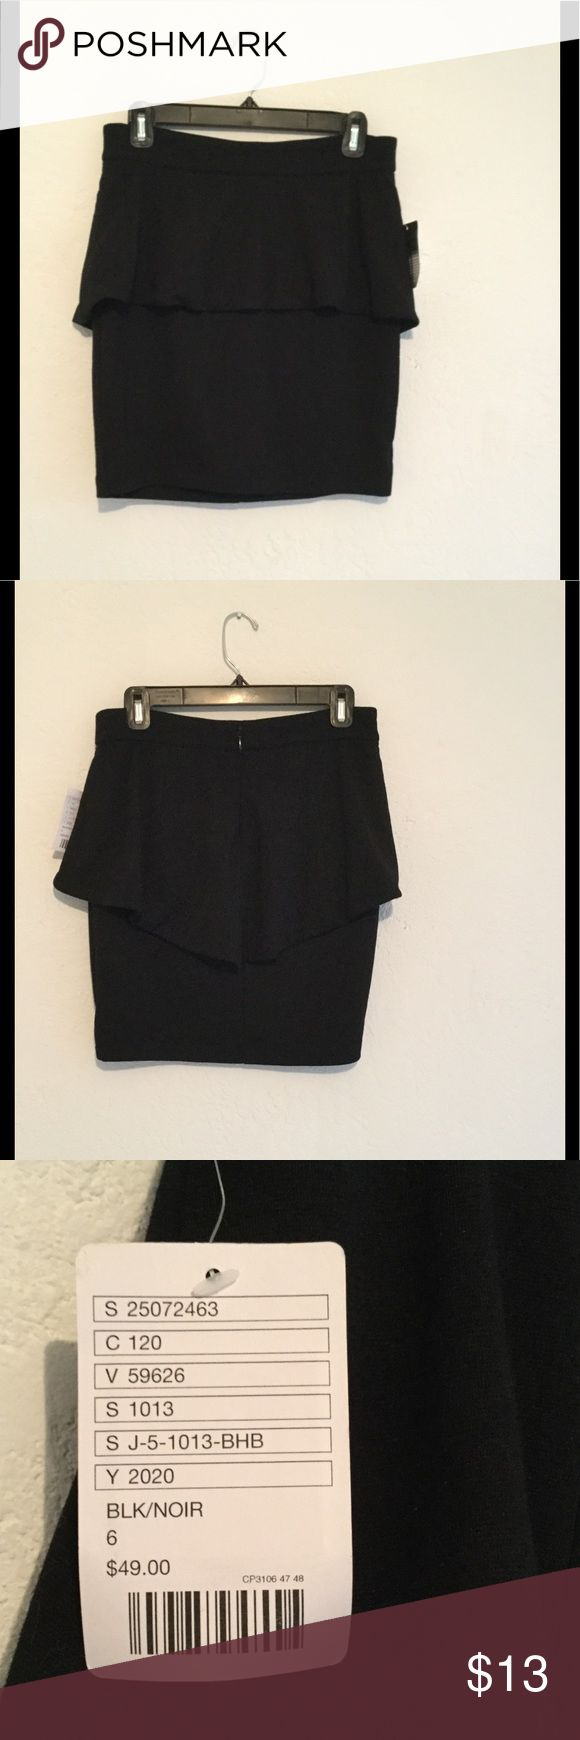 """NWT Black Peplum Skirt, Urban Outfitters Black peplum skirt, size 6. NWT. Great fit. I wear a size 2 now, and the skirt still fits well. 17"""" in length. Very flattering style 😍 Sparkle & Fade Skirts"""